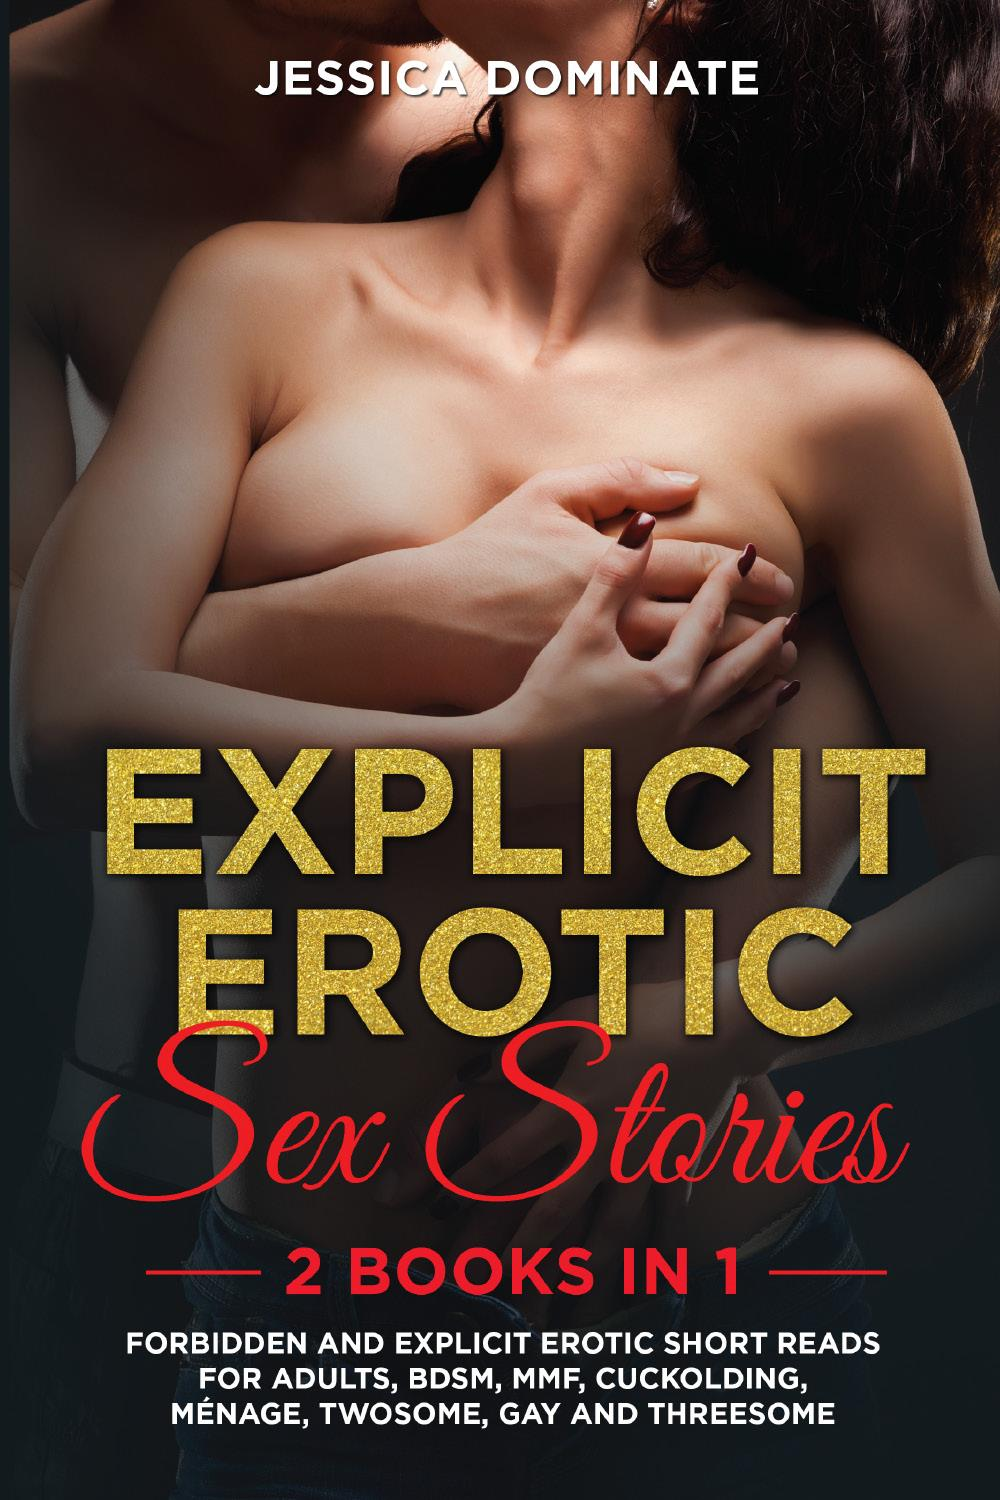 Explicit Erotic Sex Stories (2 Books in 1). Forbidden and Explicit Erotic Short Reads for Adults, BDSM, MMF, Cuckolding, Ménage, Twosome, Gay and Threesome